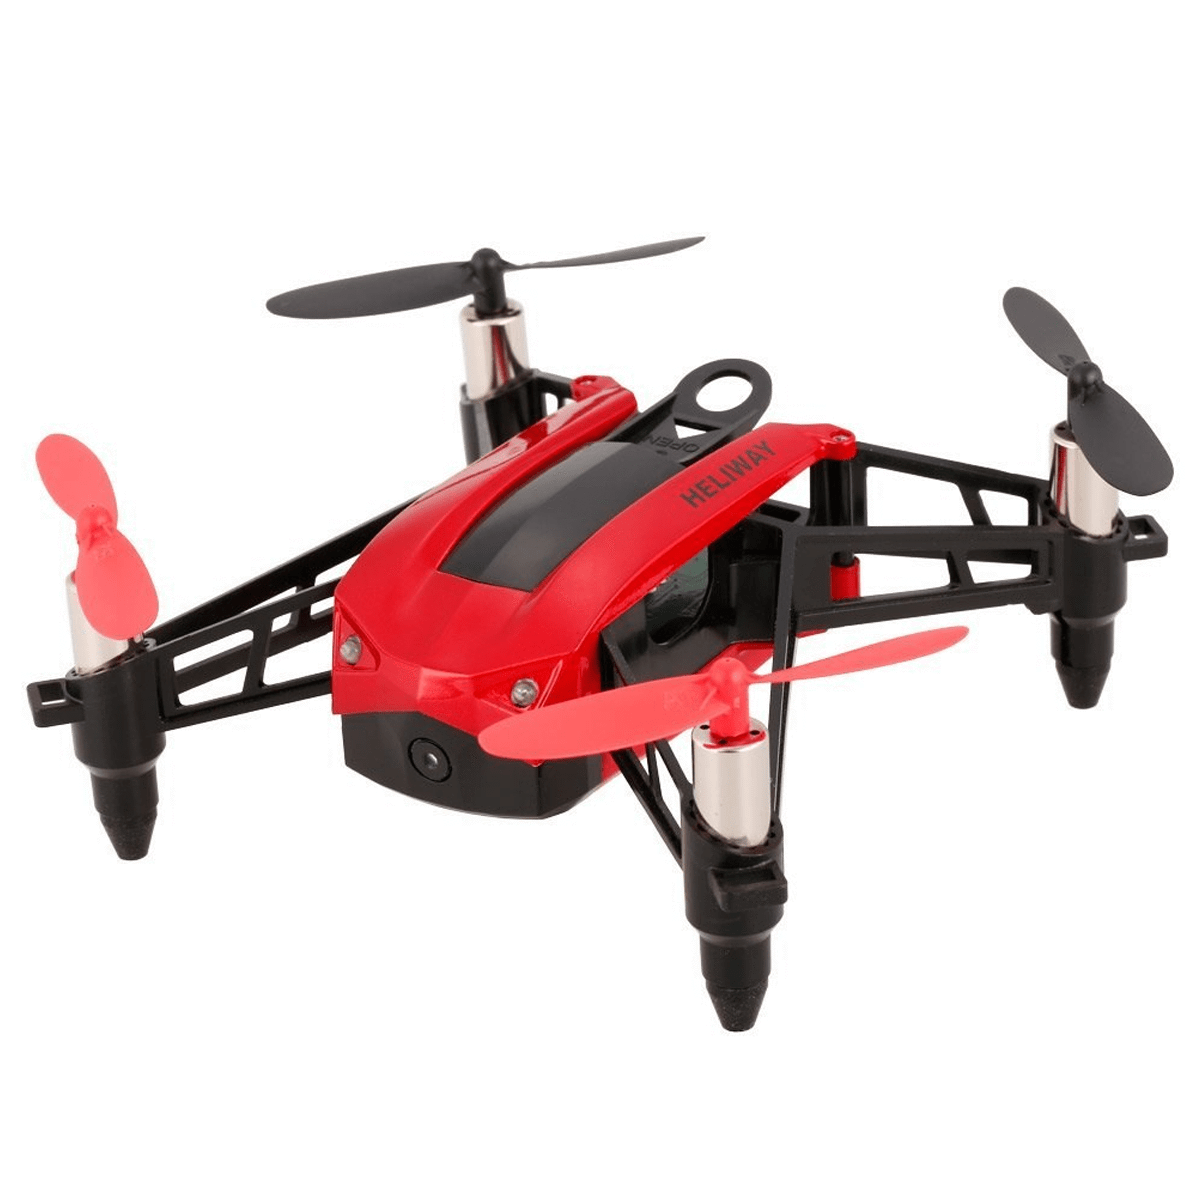 HELIWAY High Speed Selfie Drone Racing Quadcopter Red